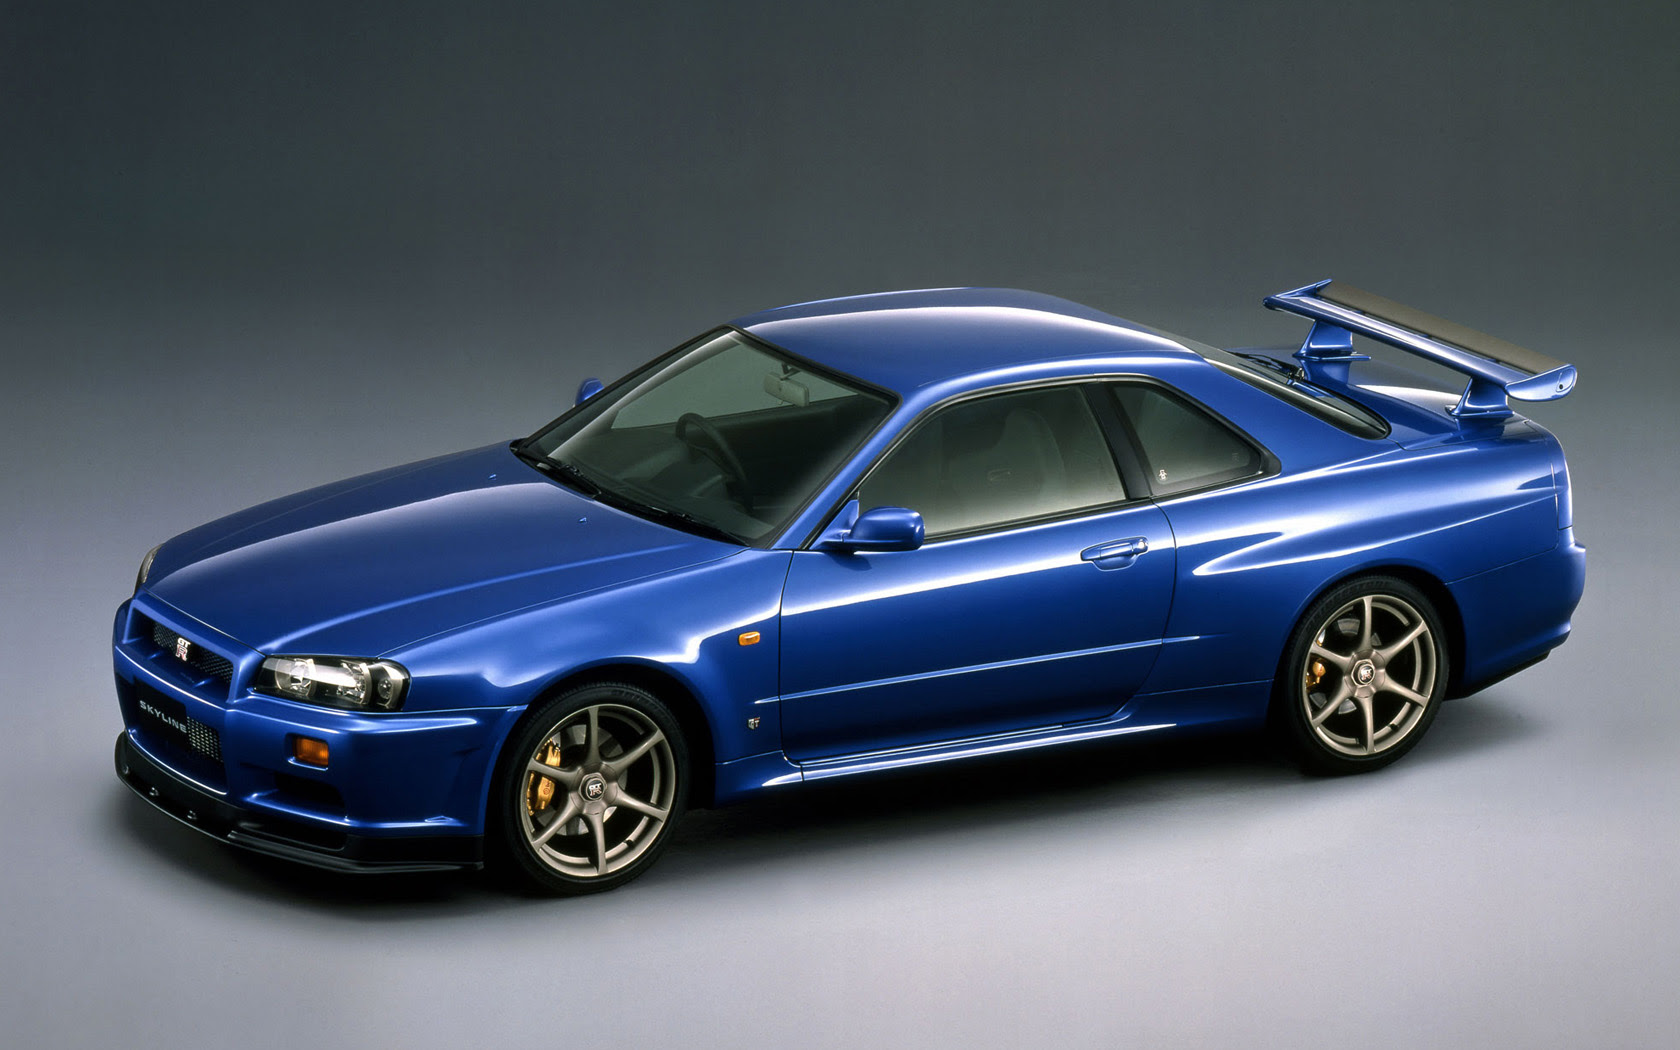 R34 Nissan Skyline Gtr Free Widescreen Wallpaper Desktop